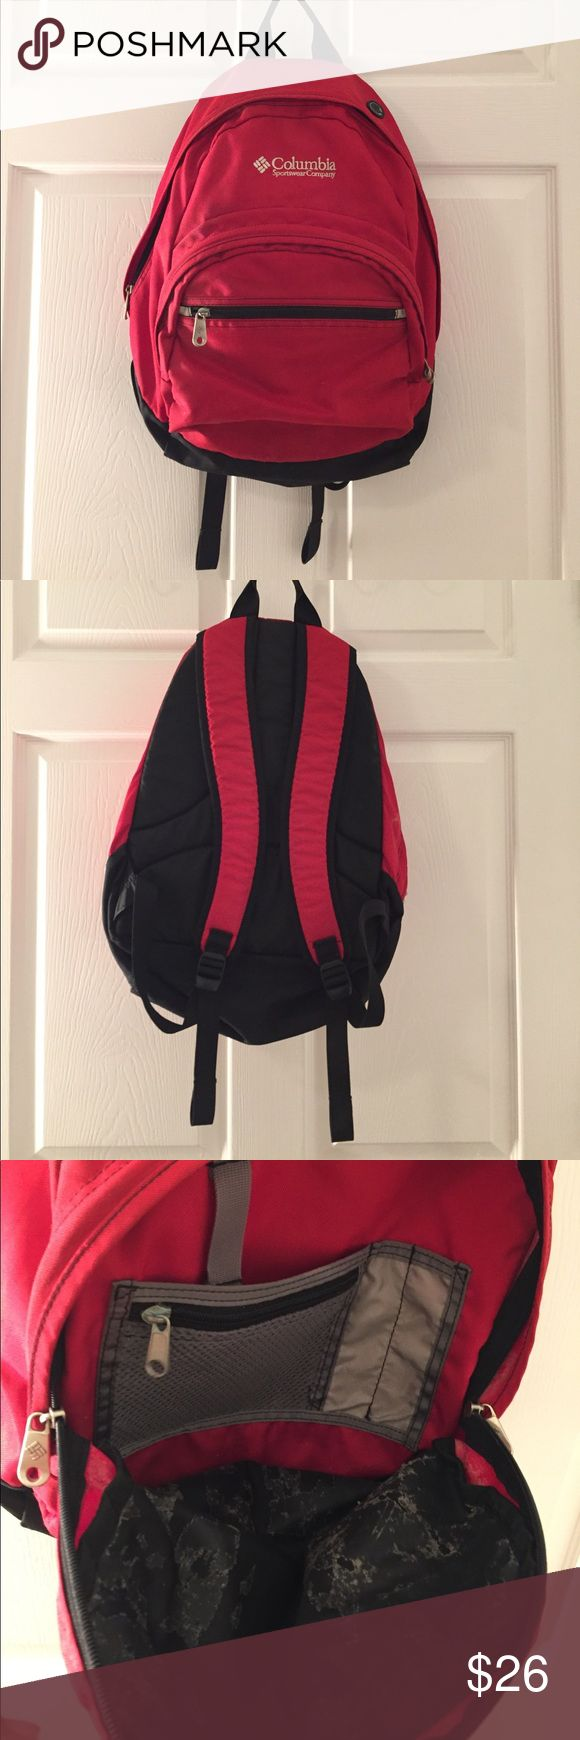 Columbia Sportswear Company backpack Columbia Sportswear Company backpack in a bright red color. Used, with some signs of wear inside but the quality of the backpack is intact. Overall in great condition. ✨Bundles of 3+ items get 15% off! Columbia Bags Backpacks